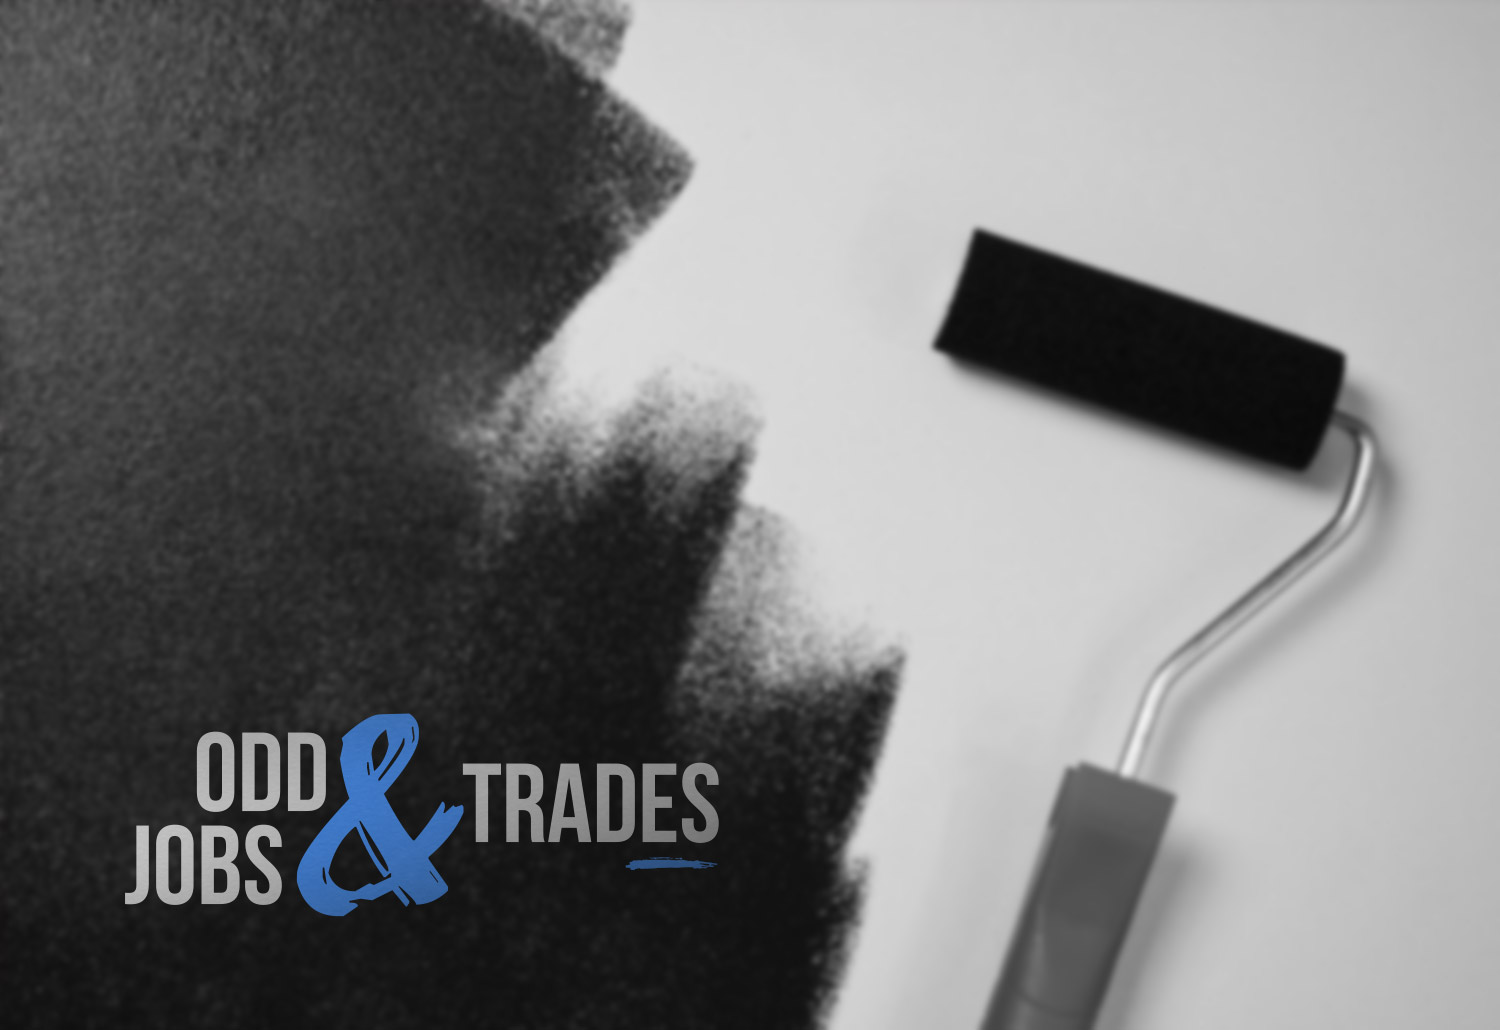 odd jobs and trades logo design